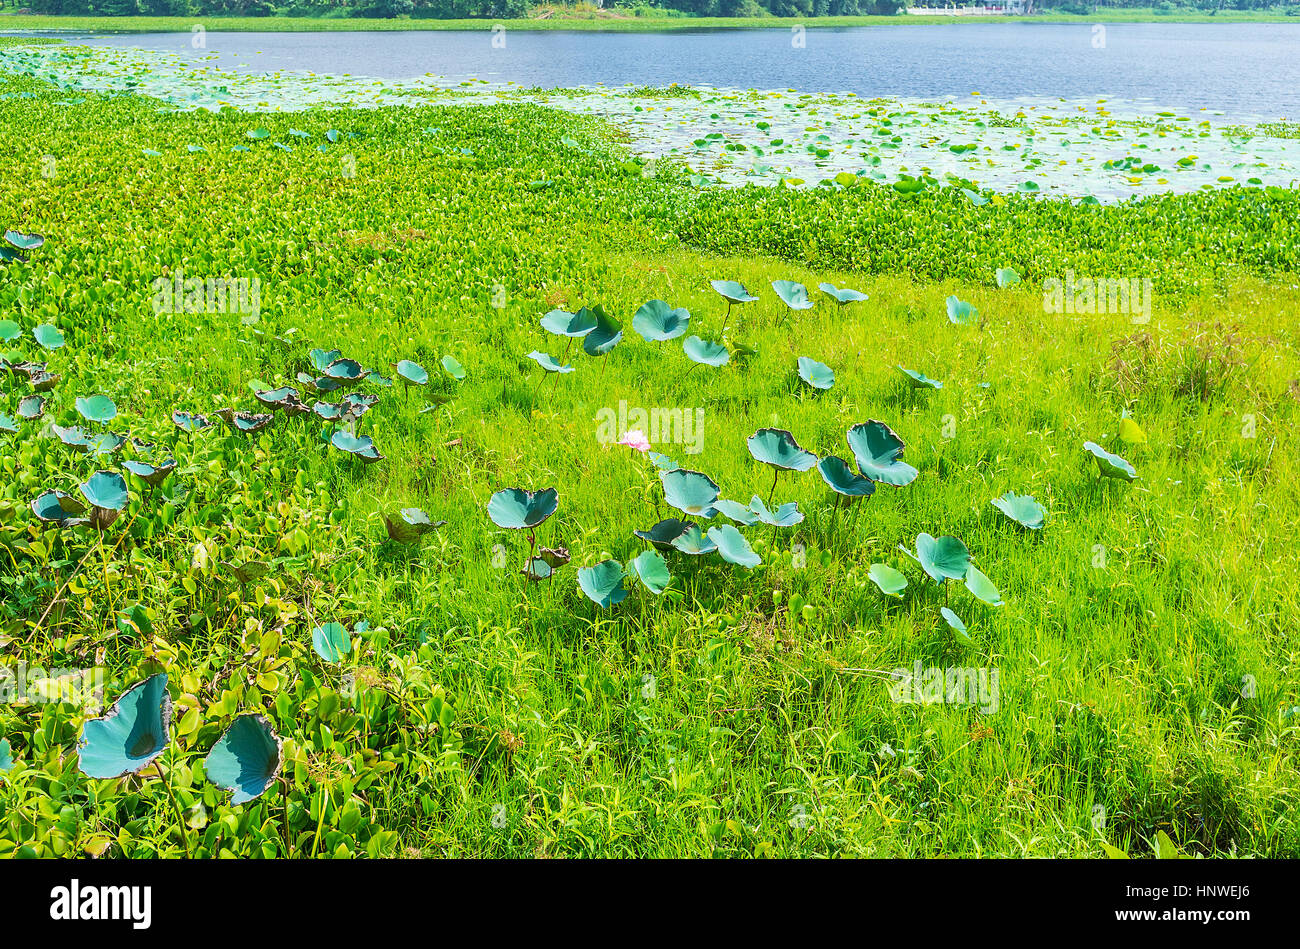 The Large Green Leaves And Bright Flowers Of Lotus Plants Grow At